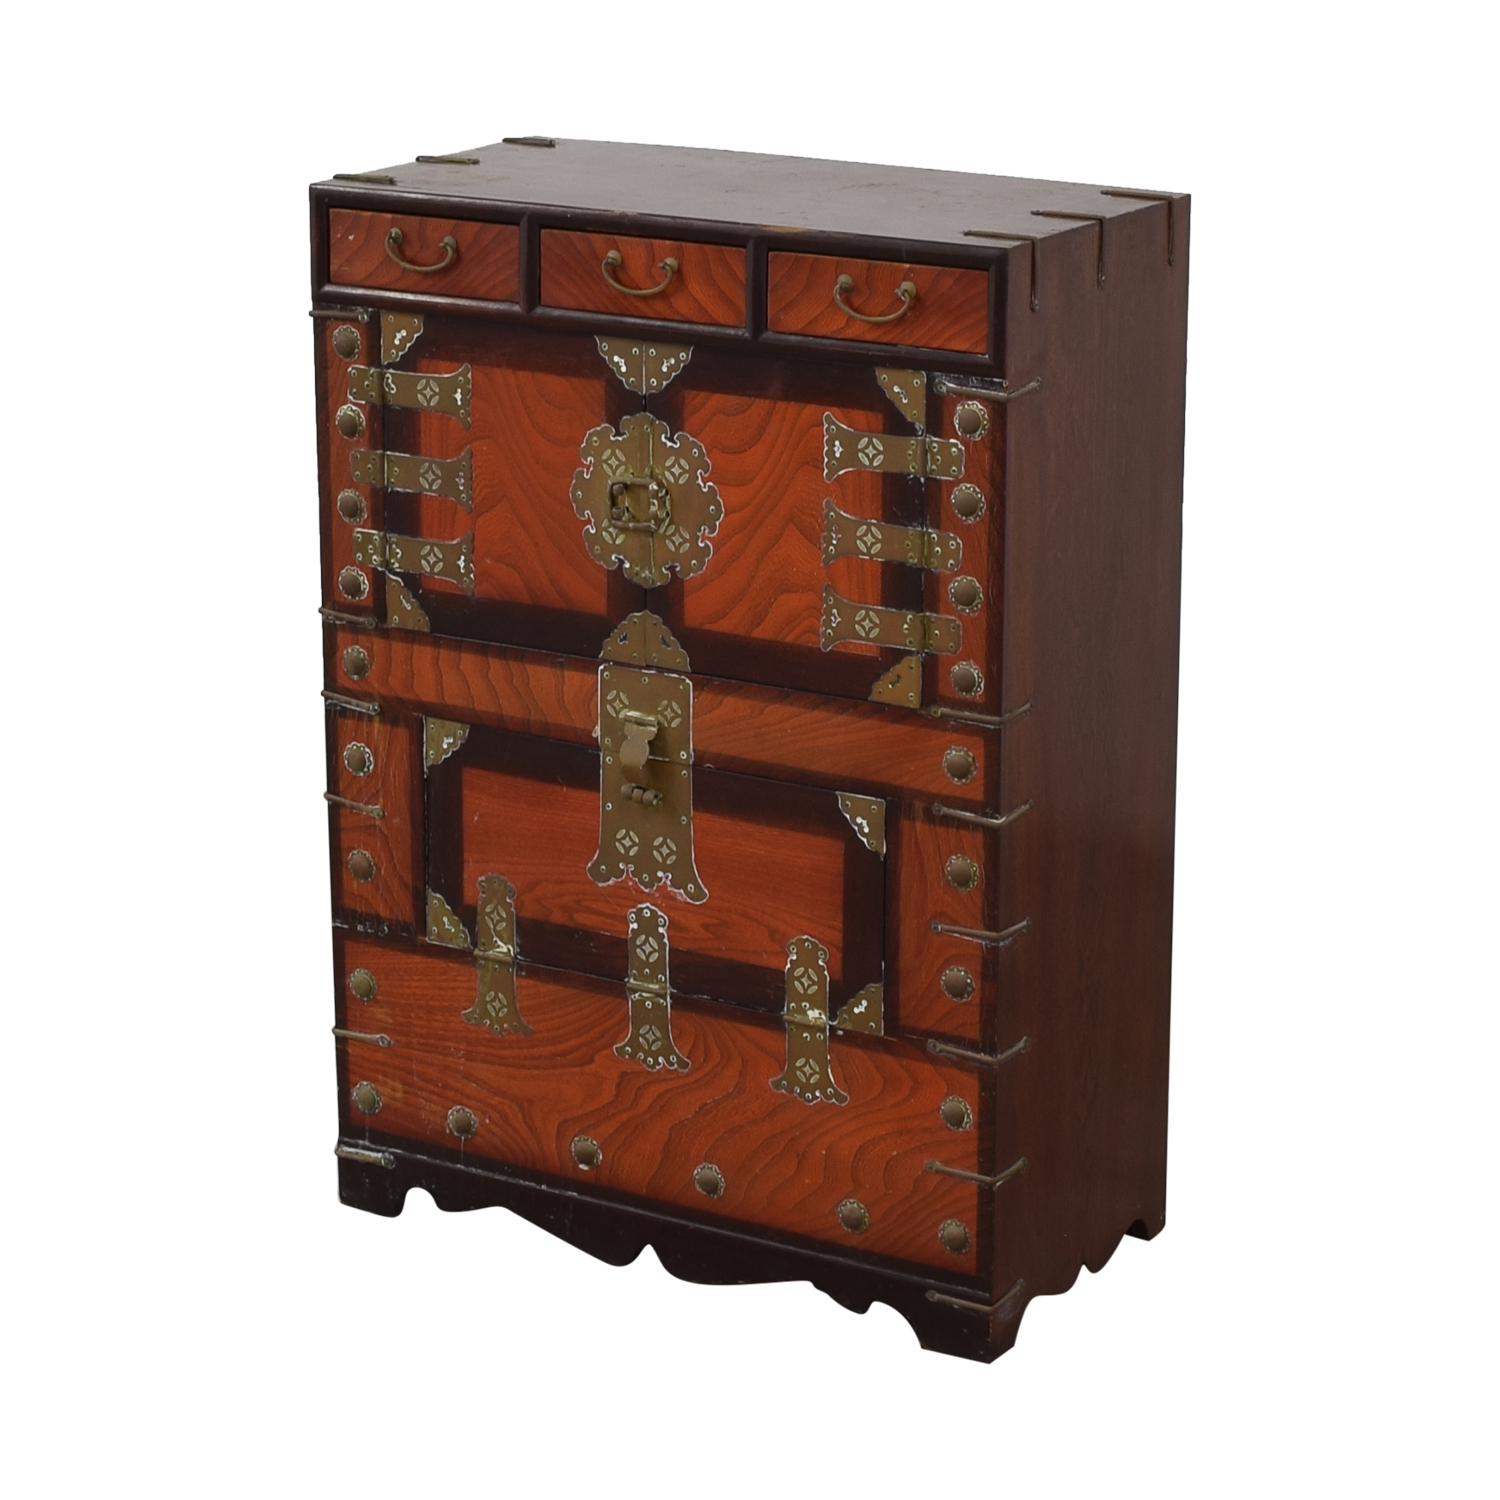 Three-Drawer Chinese Wood Chest dimensions